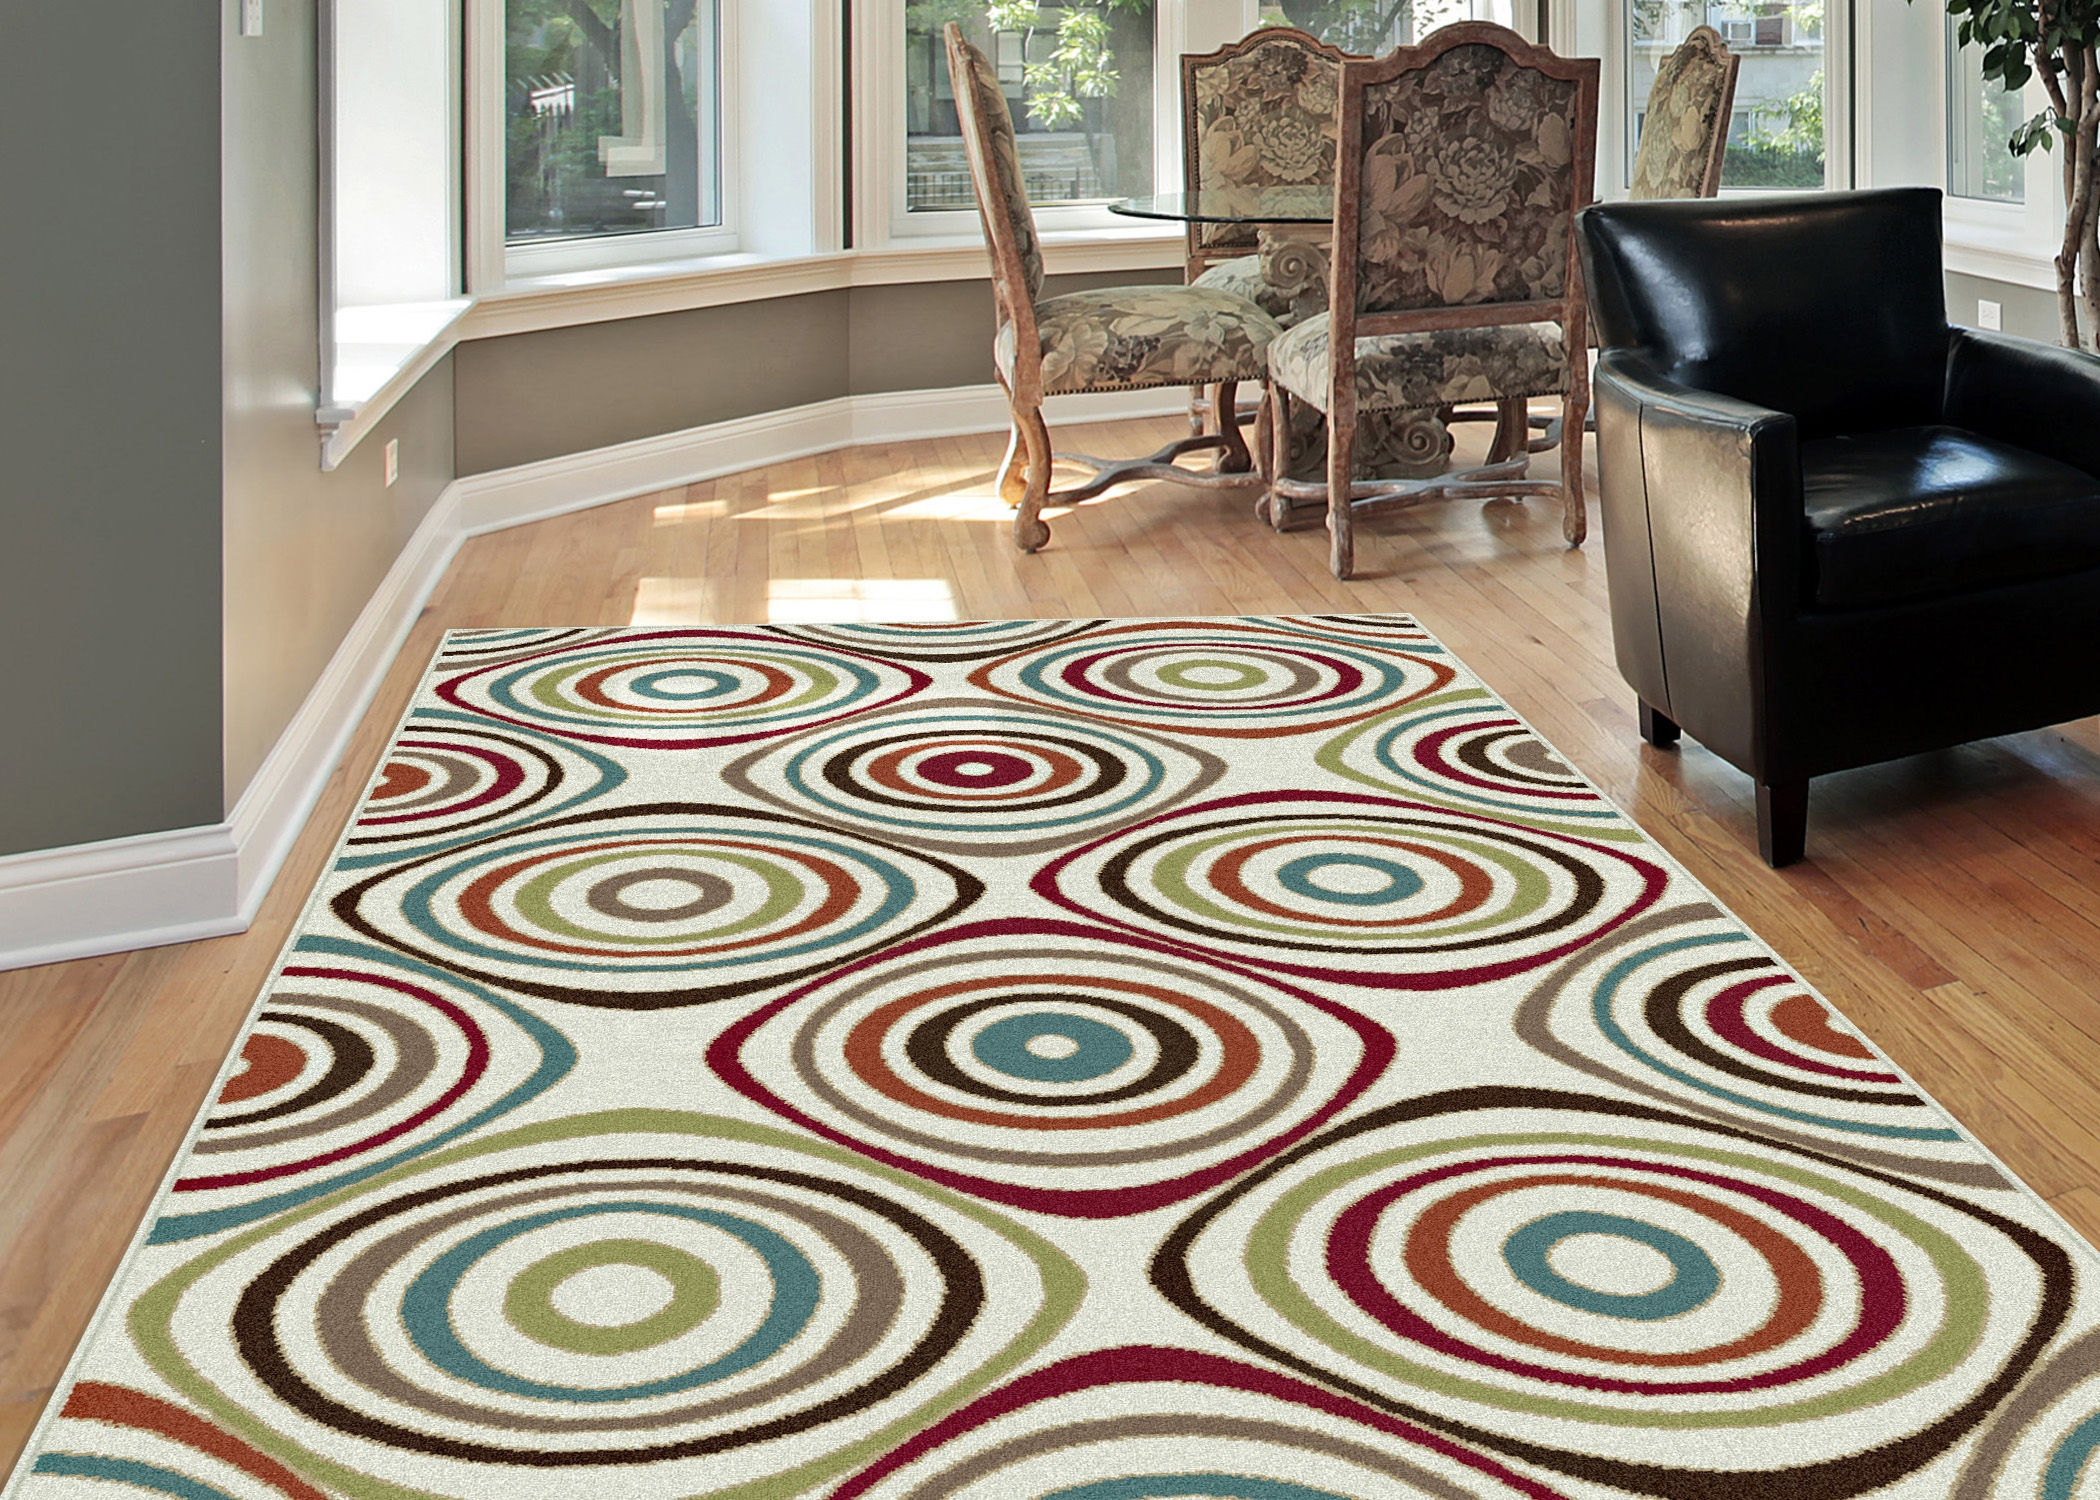 Rugs Wool Area Rugs 8×10 Area Rugs 8×10 Clearance 8×10 Area Rug Throughout [keyword (#10 of 11)